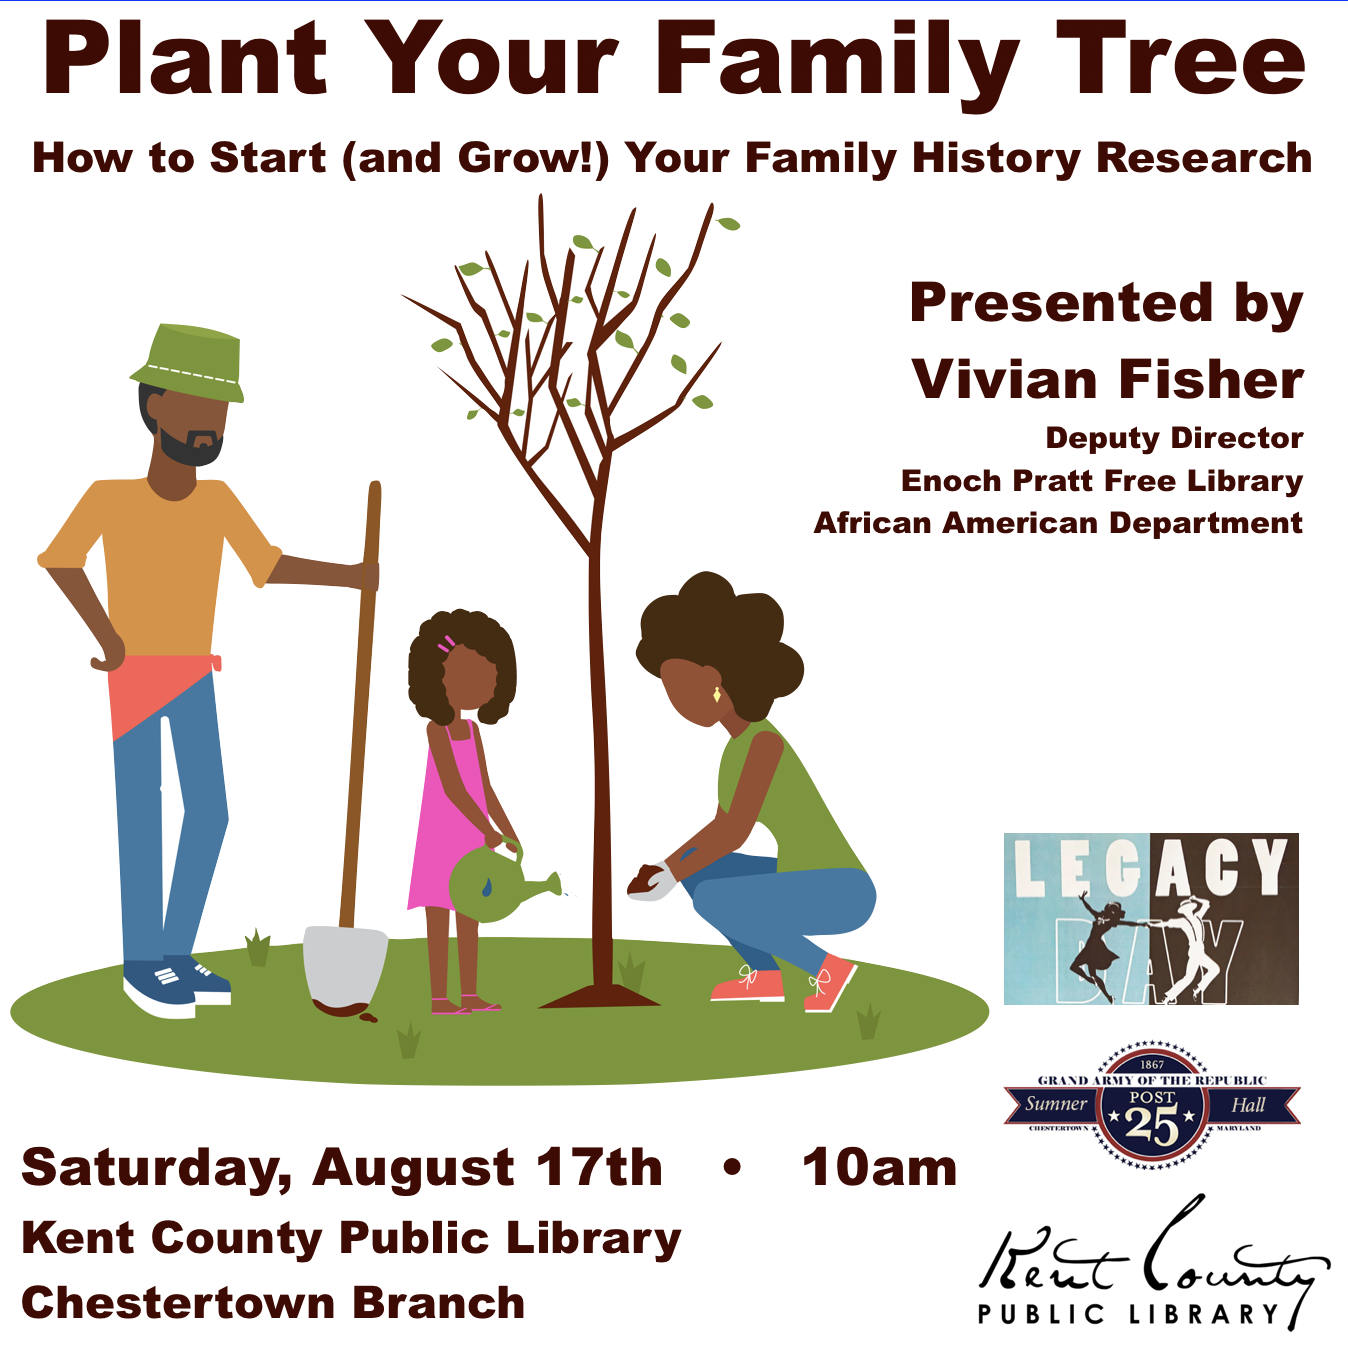 Plant Your Family Tree: How to Start (and Grow!) Your Family History Research